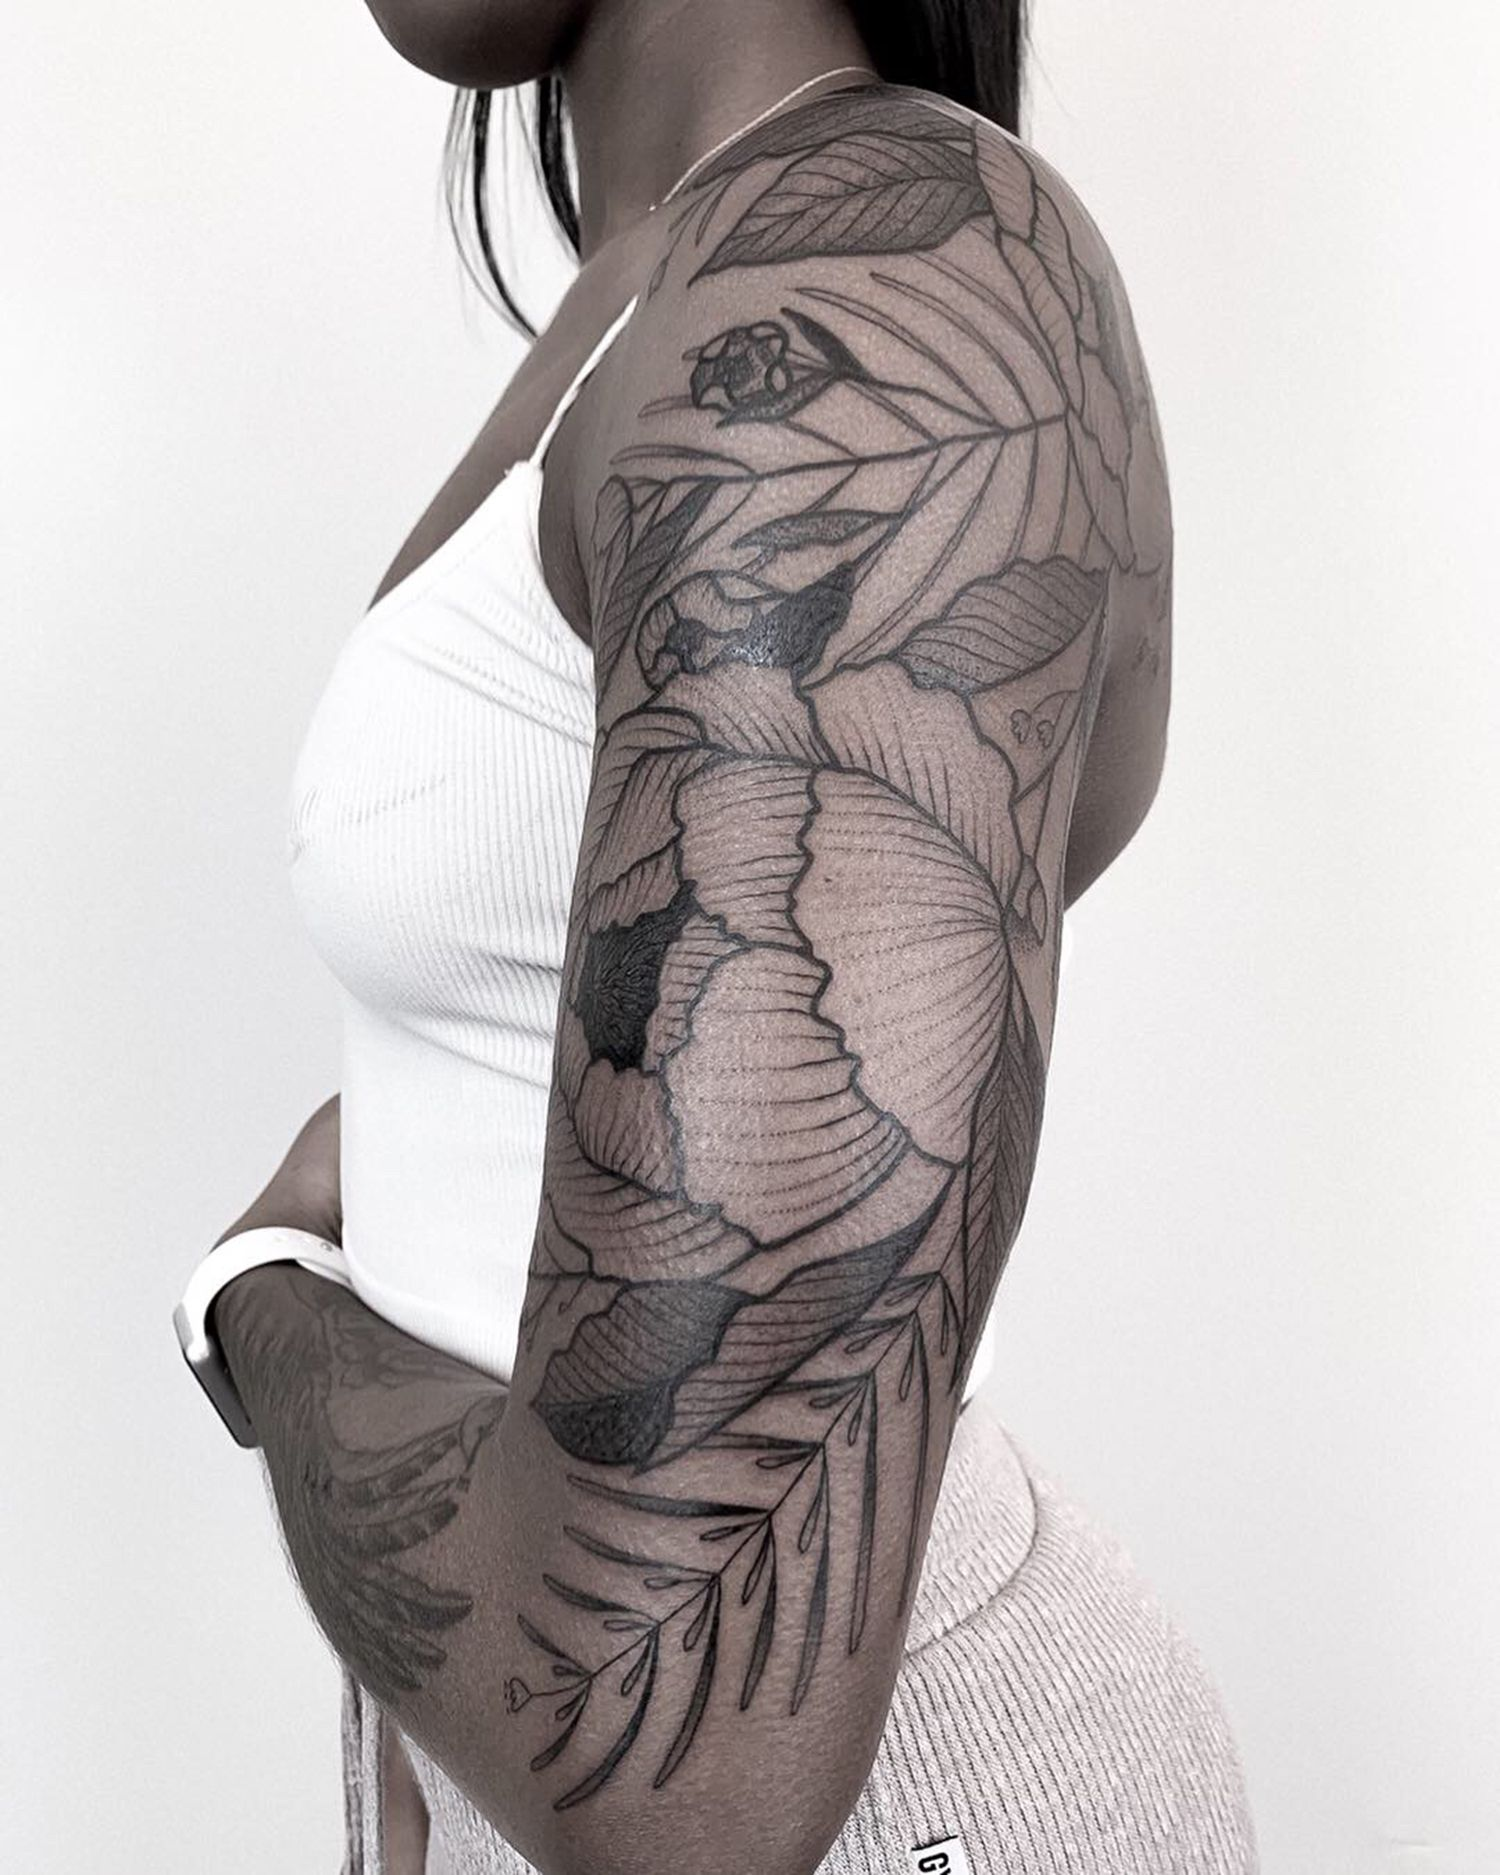 black woman, tattoo on arm, blackwork, botanical